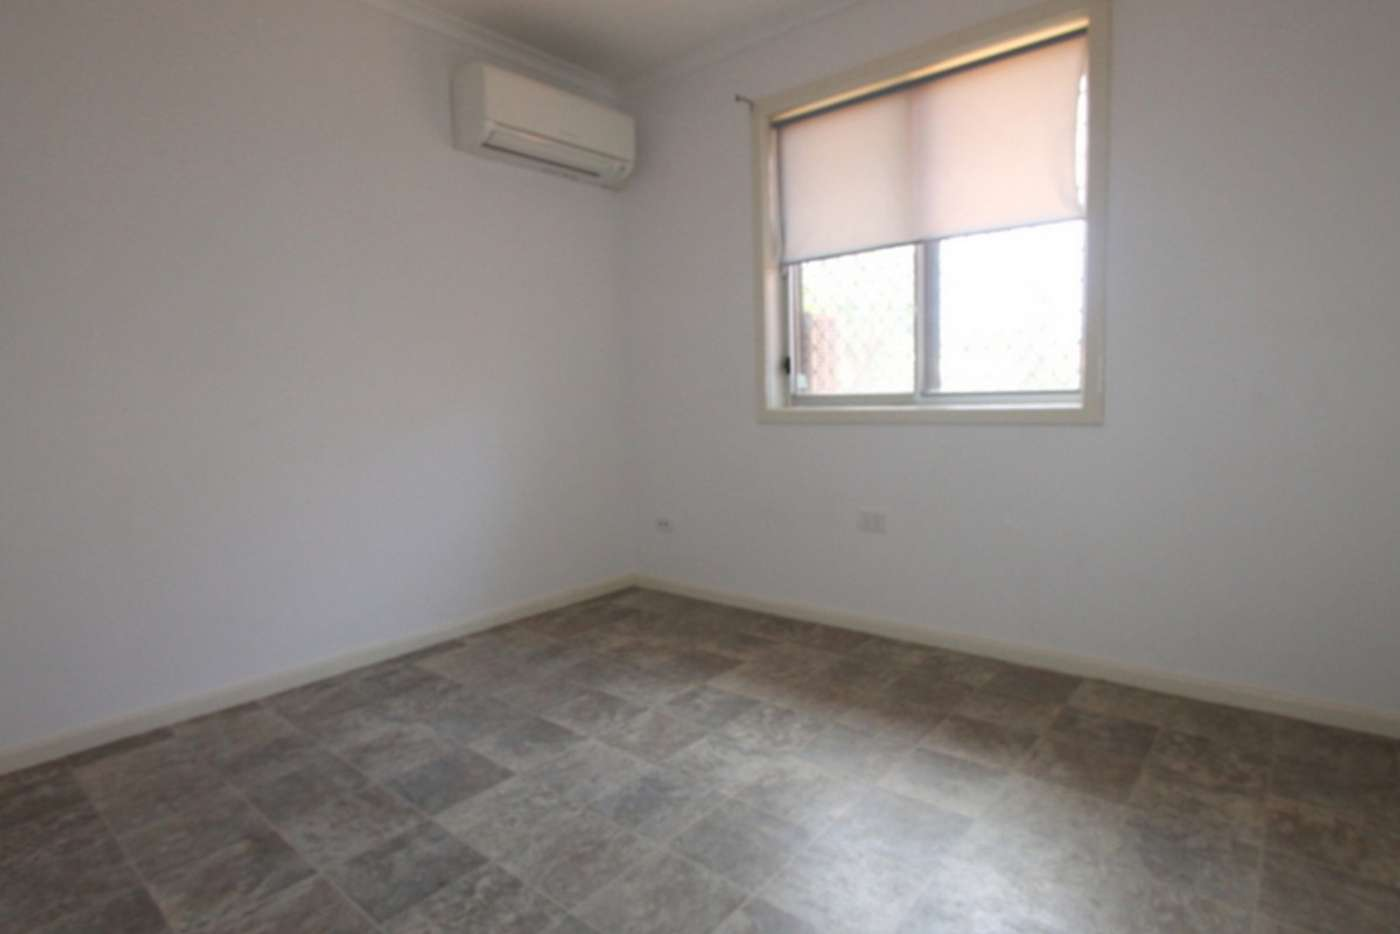 Seventh view of Homely house listing, 13 Haines Road, South Hedland WA 6722